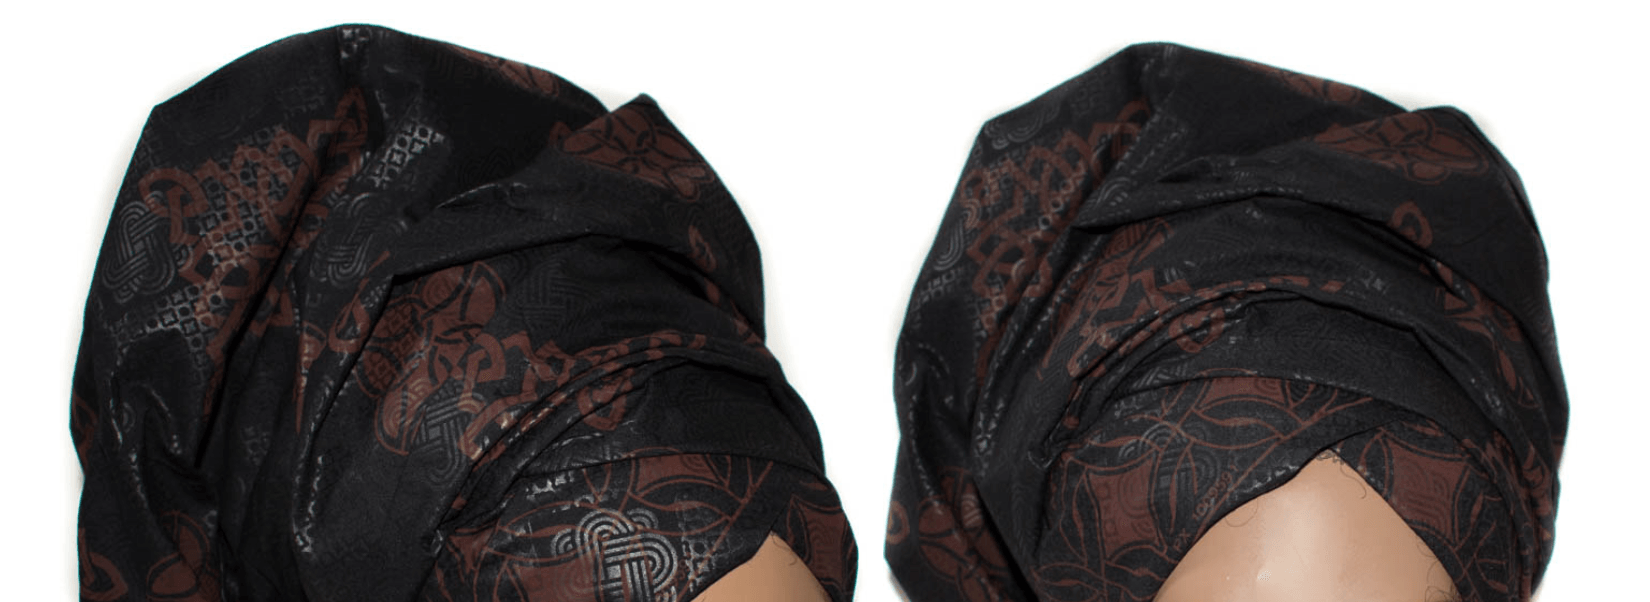 African Print Headwrap - Black Chocolate Abstract Print